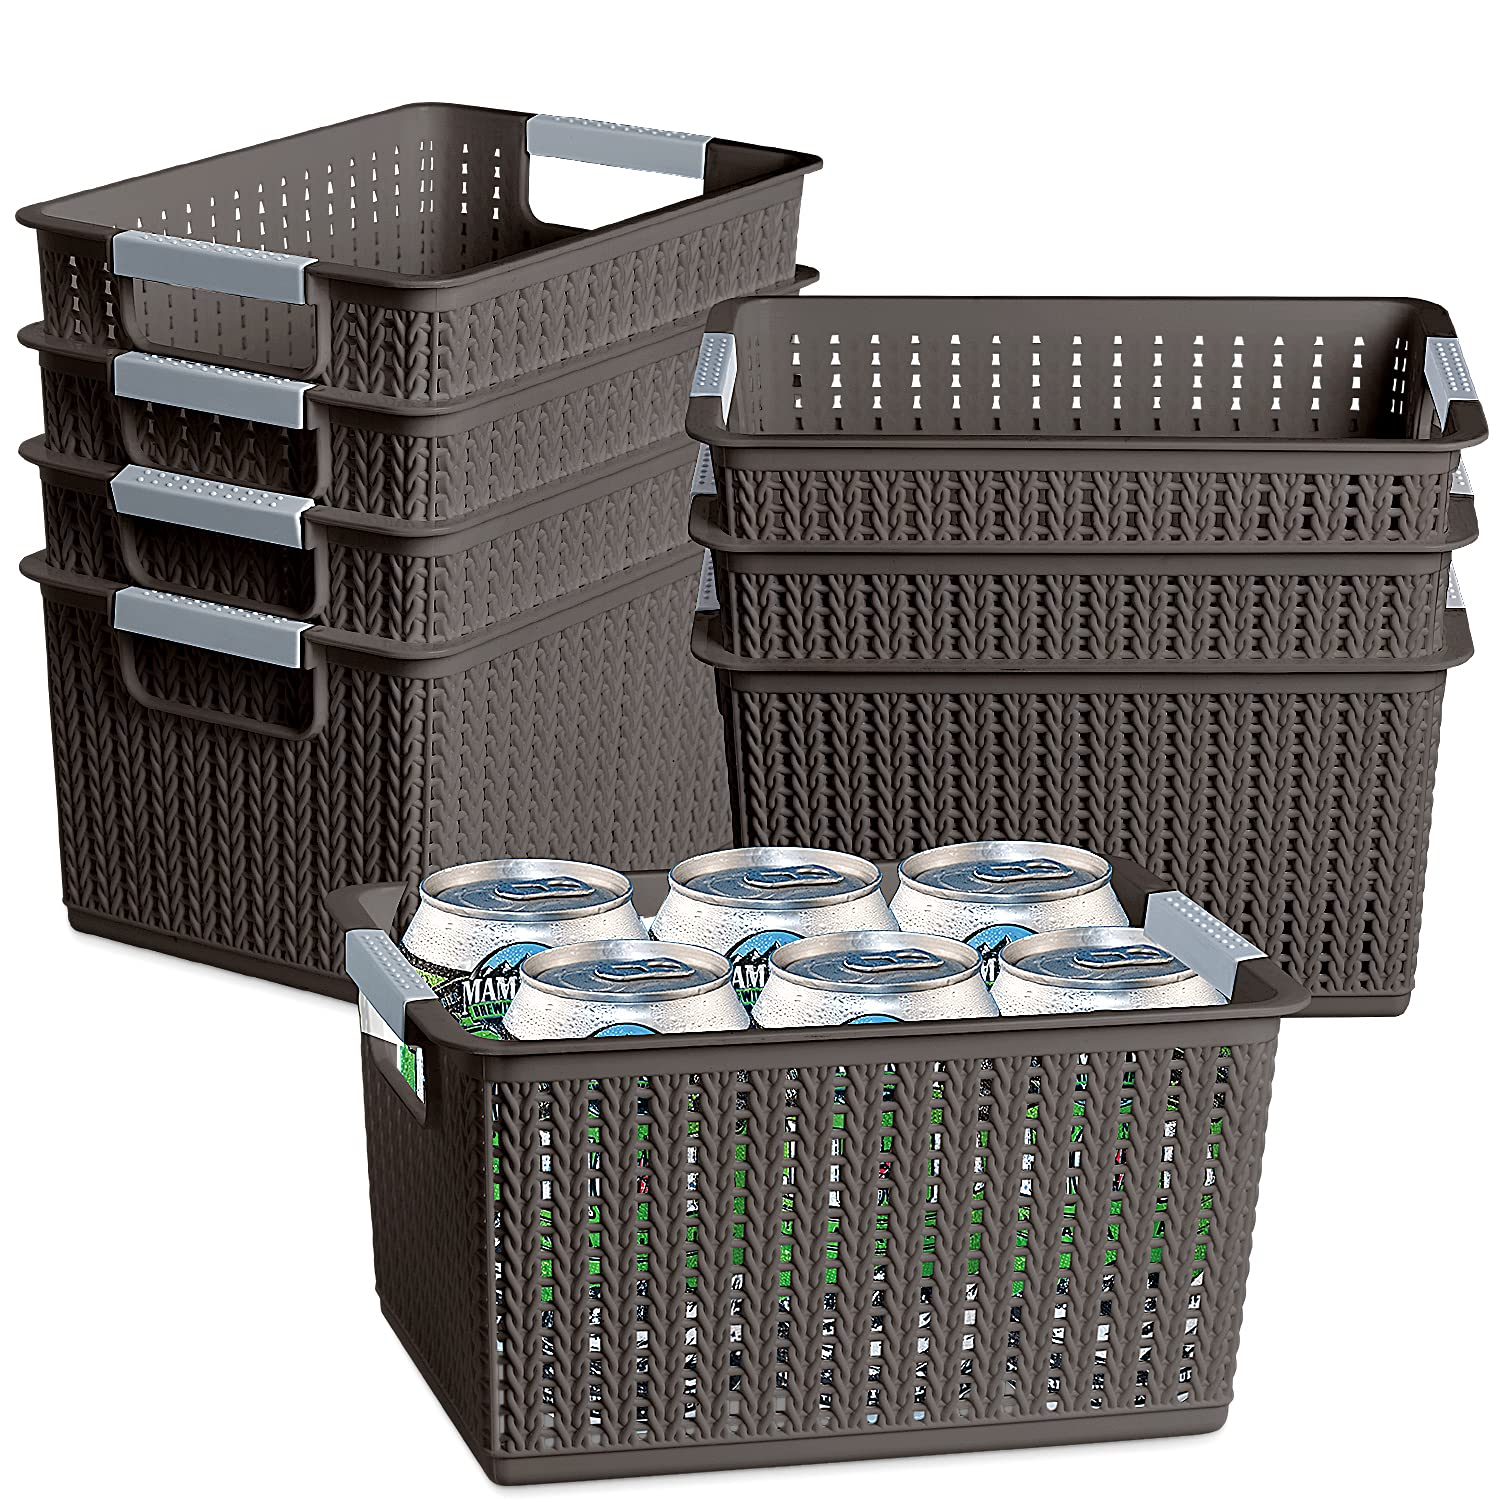 Over item handling 8 Pack Plastic Weave Sales of SALE items from new works Storage Handle Sta Basket with HommyPrefer